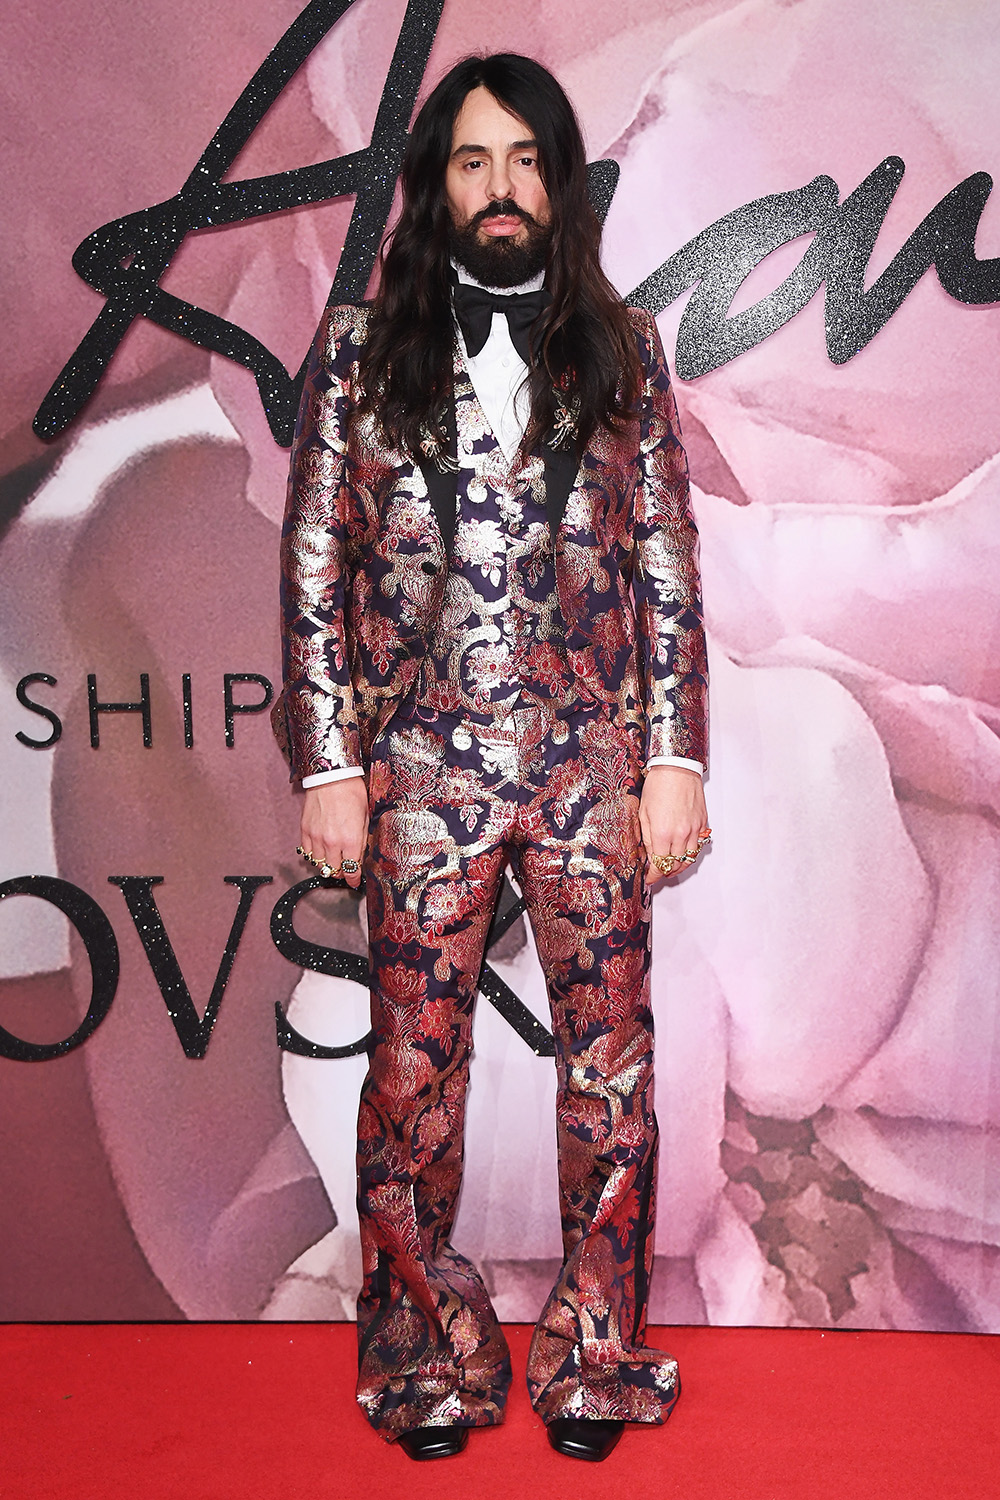 LONDON, ENGLAND - DECEMBER 05:  Gucci Creative Director Alessandro Michele walks the red carpet for the British Fashion Awards 2016 on December 5, 2016 in London, England.  (Photo by Venturelli/Getty Images for GUCCI)